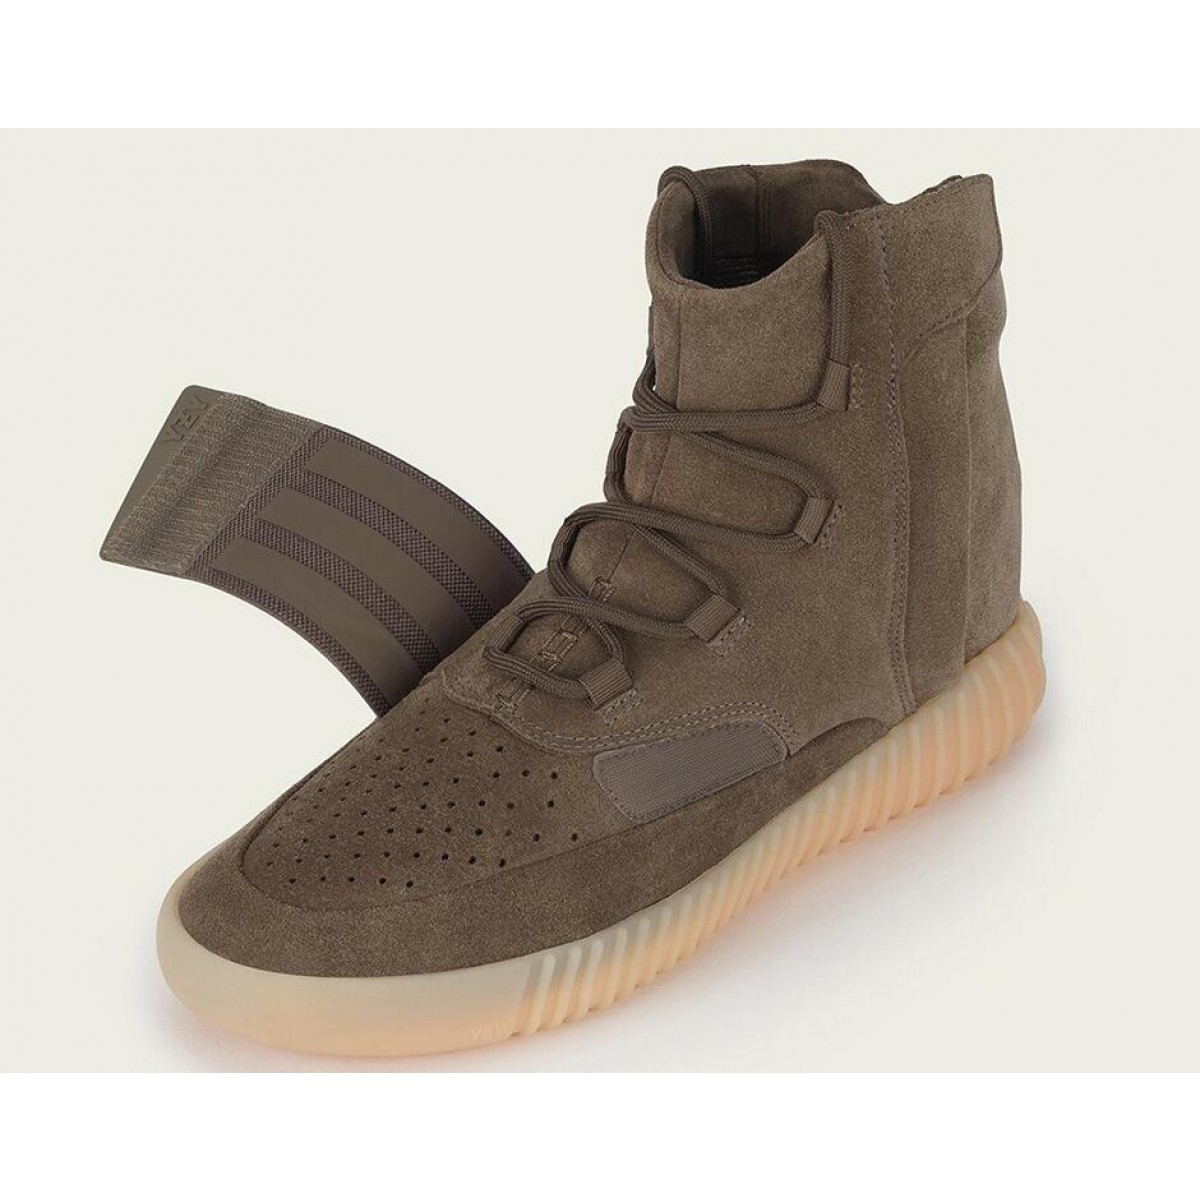 Adidas Yeezy Boost 750 Brown Shoes 19700a807